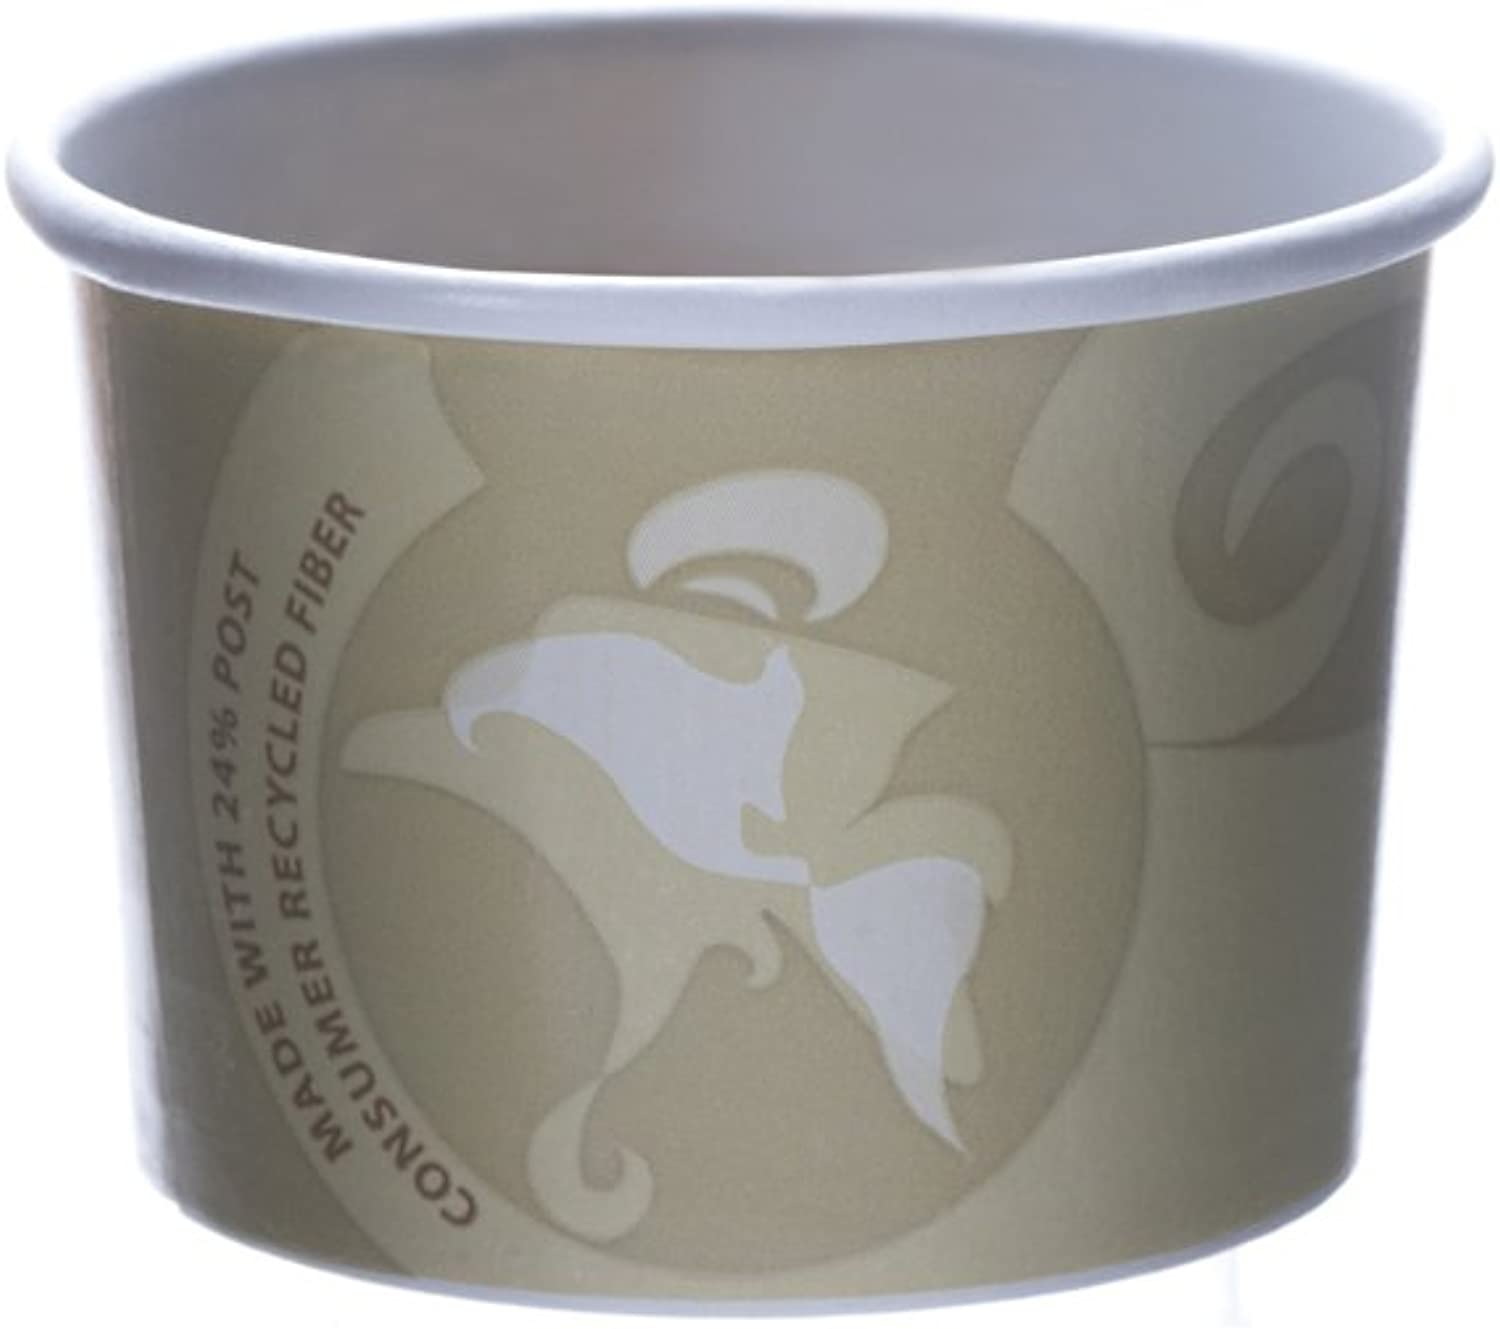 Eco-Products - Evolution World 24% Recycled Content Food Containers - 8oz. Container - EP-BRSC8-EW (Case 1000)